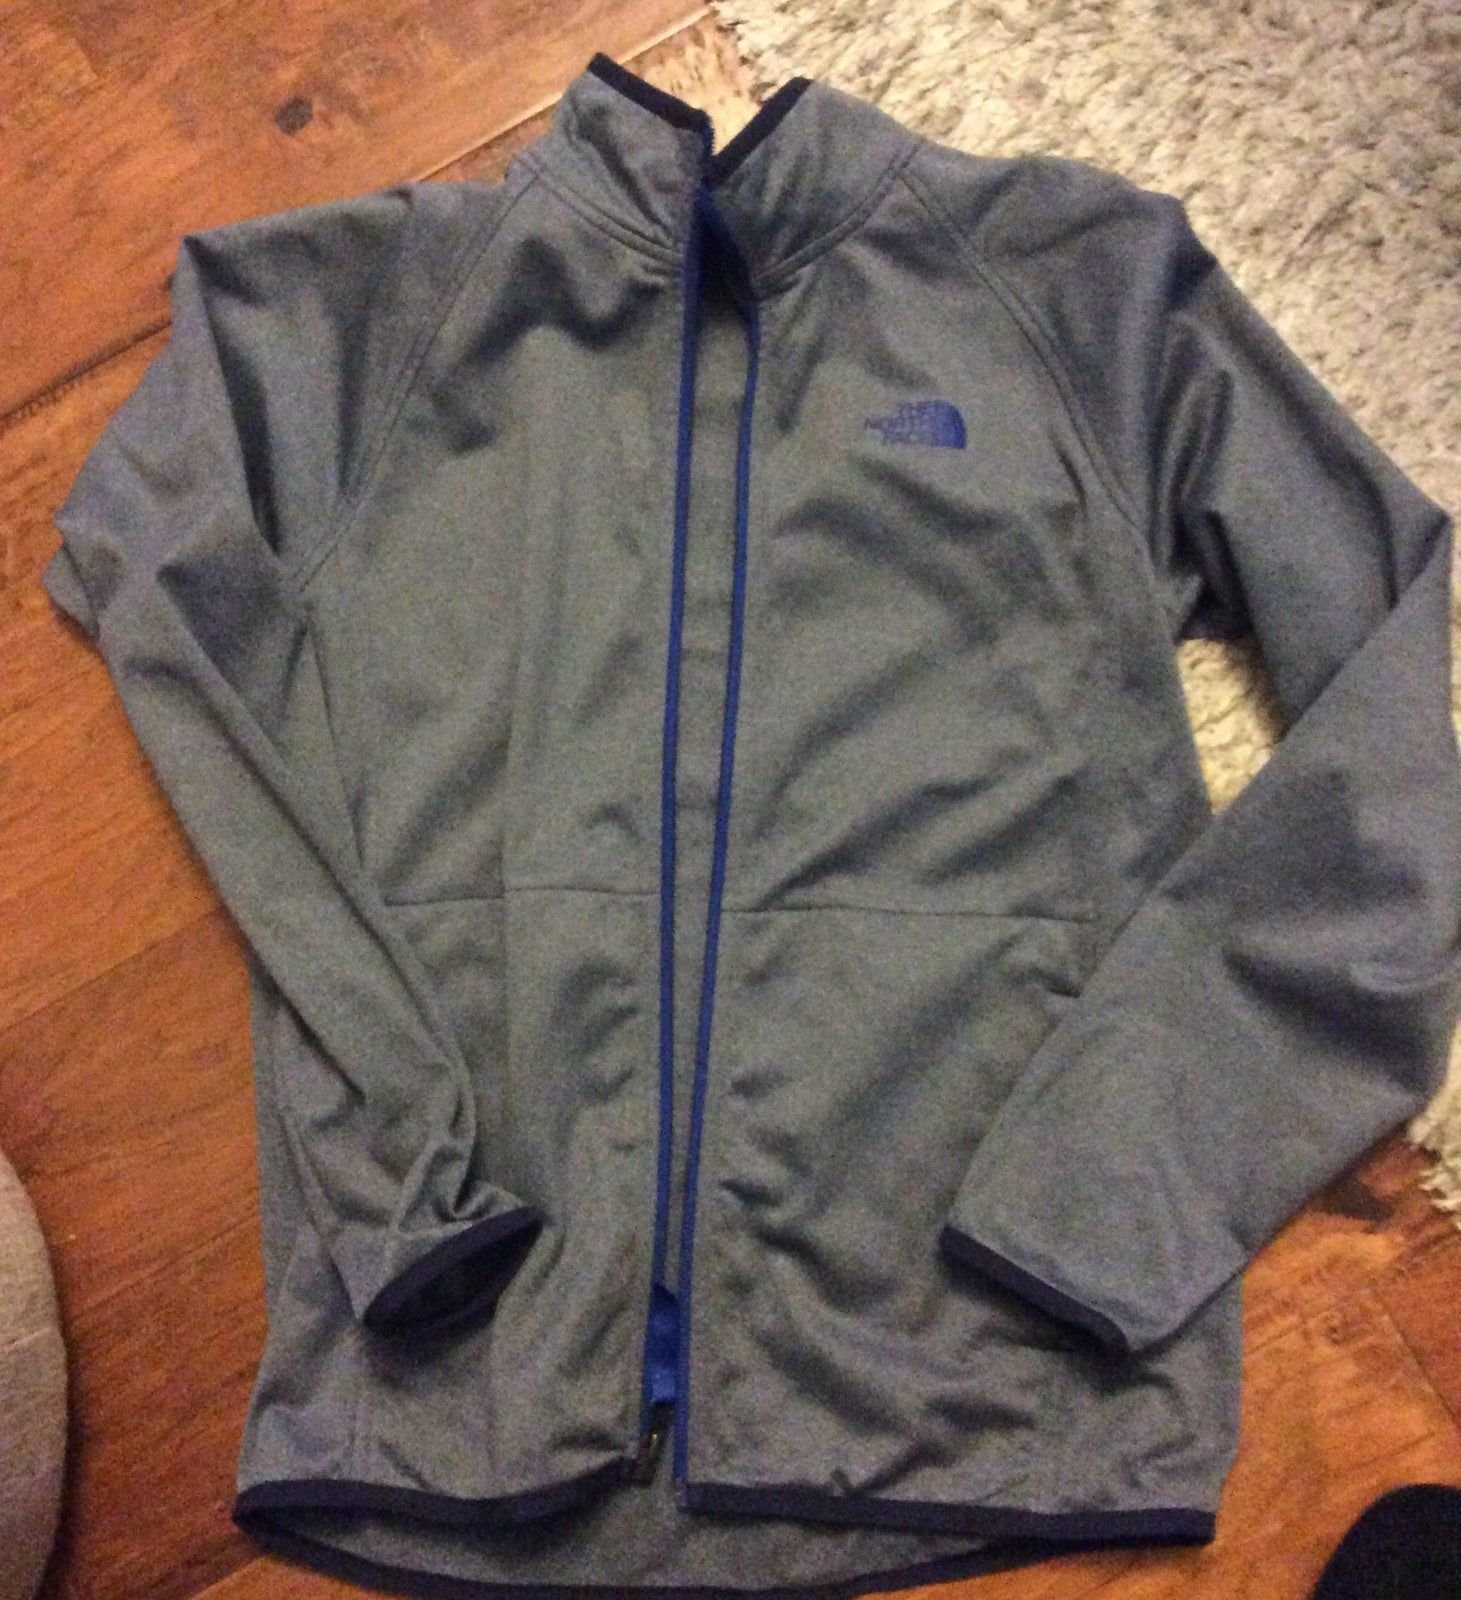 Awesome Jacket Worn Only A Few Times Boys Large Grey Jacket North Face Coat Gray Jacket Jackets [ 1600 x 1461 Pixel ]